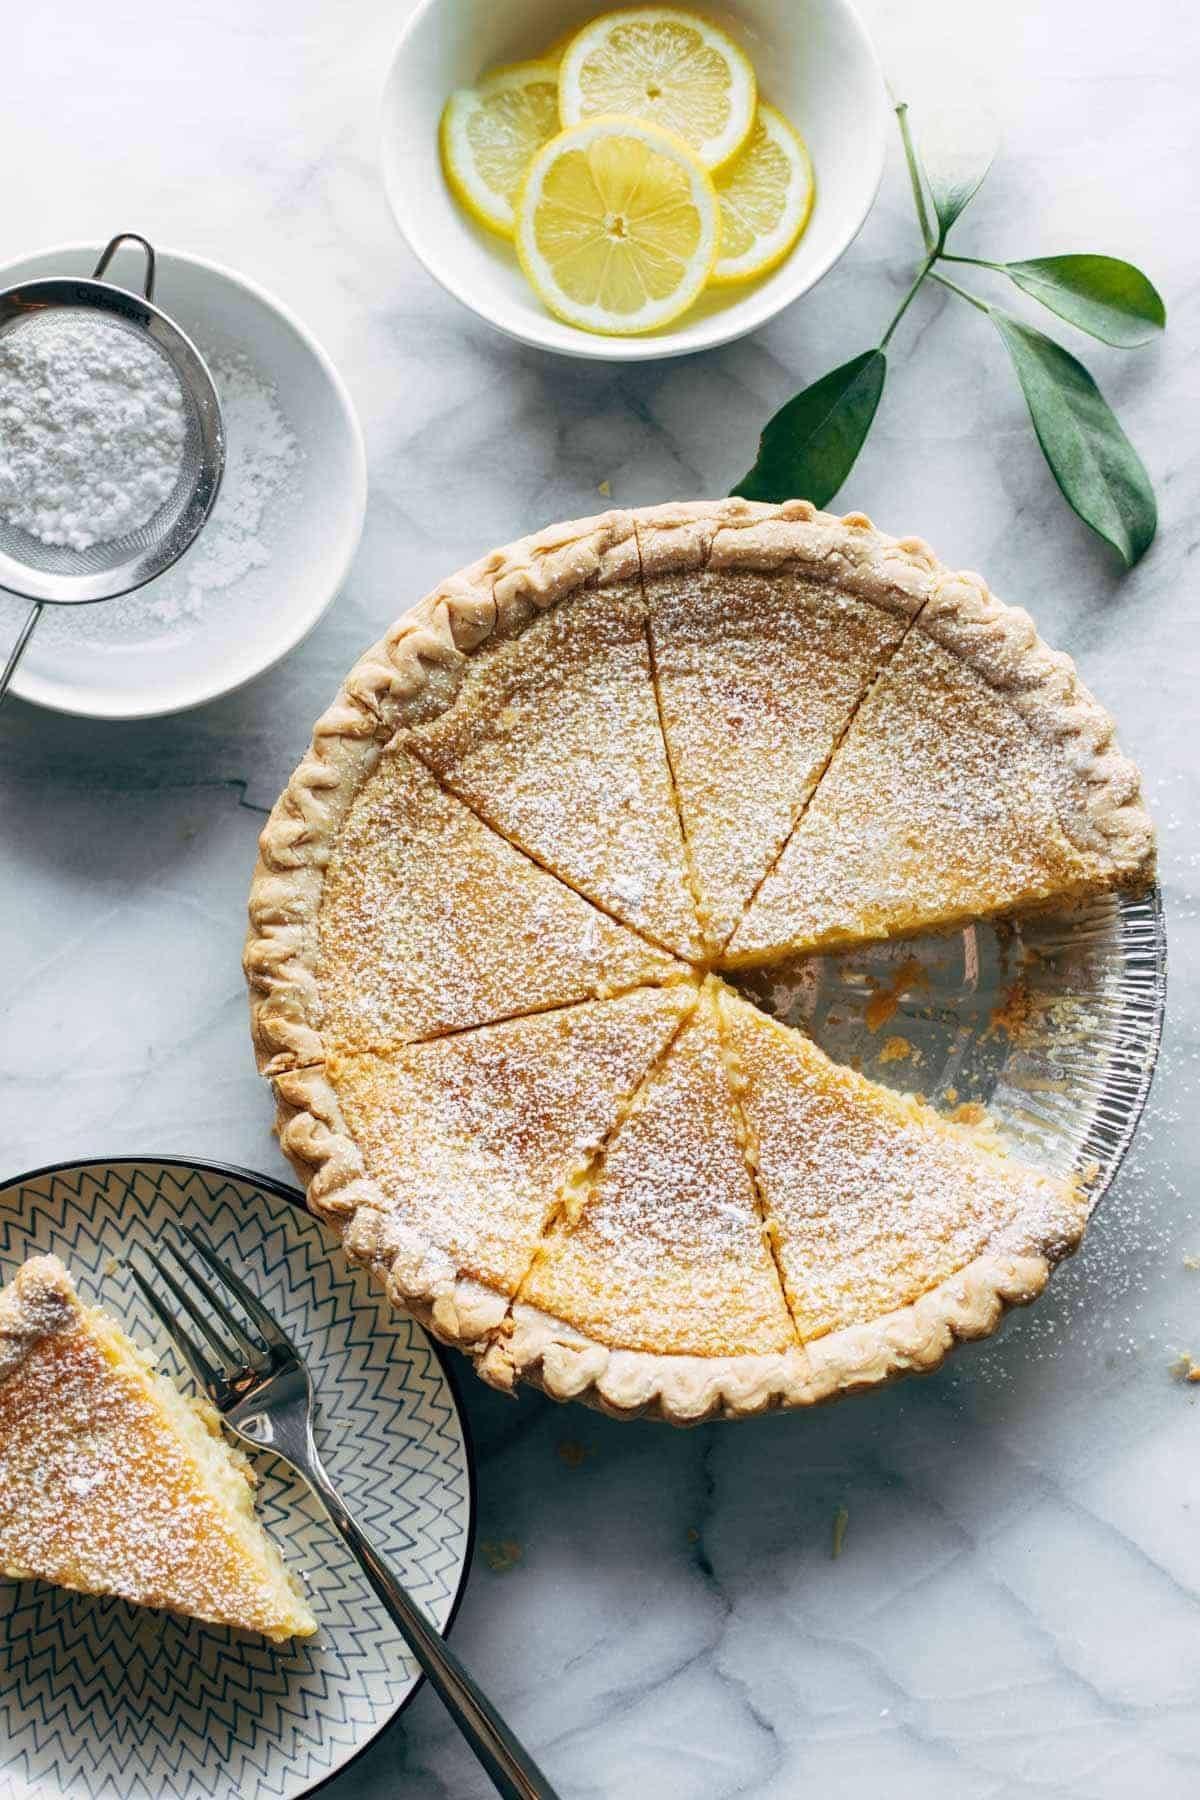 Lemon pie with powdered sugar.